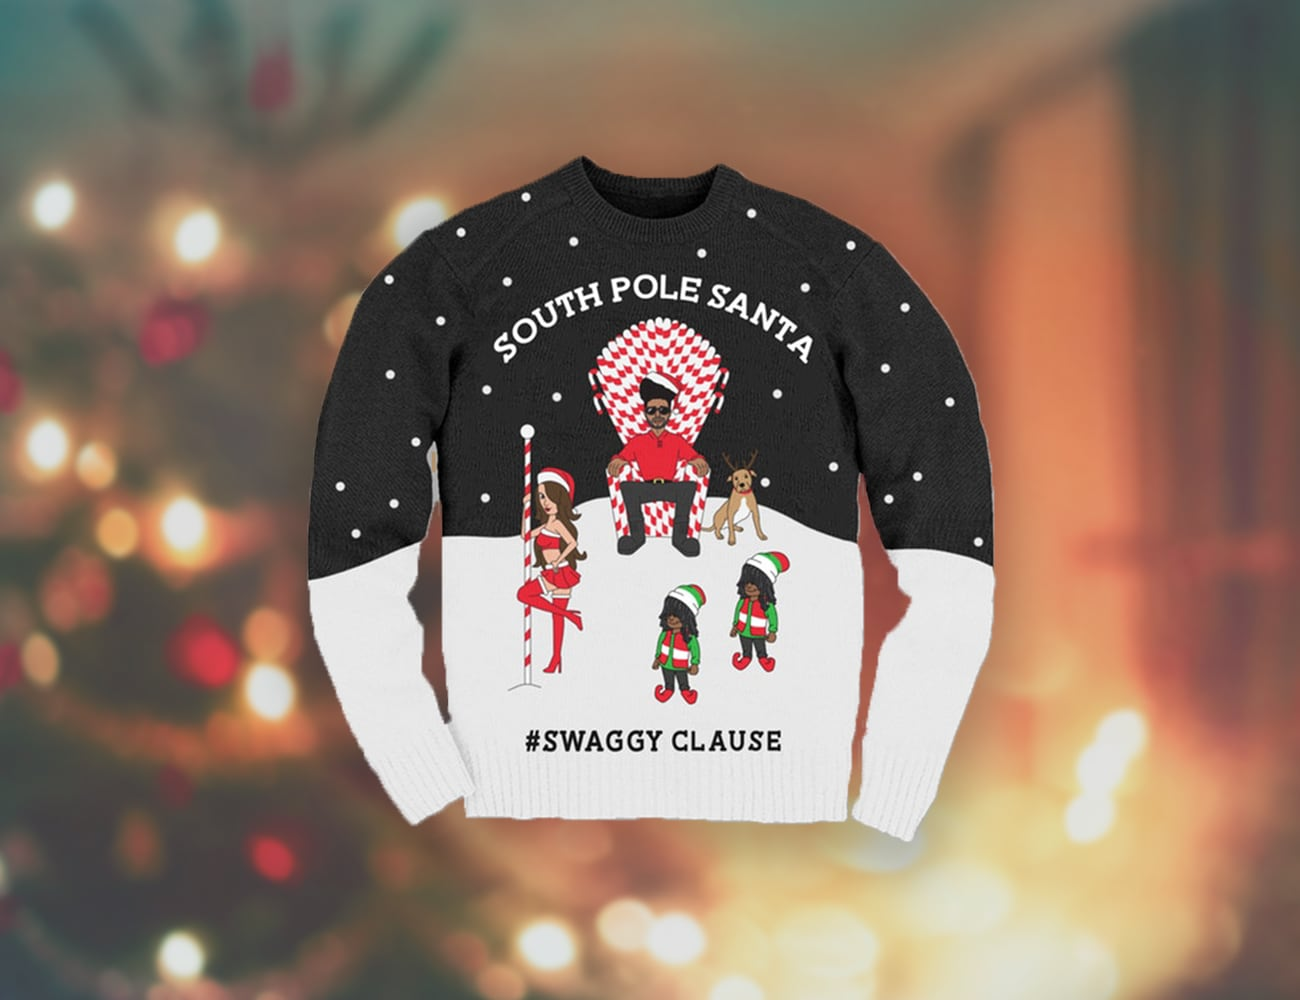 Swaggy Clause Christmas Ornaments and Apparel